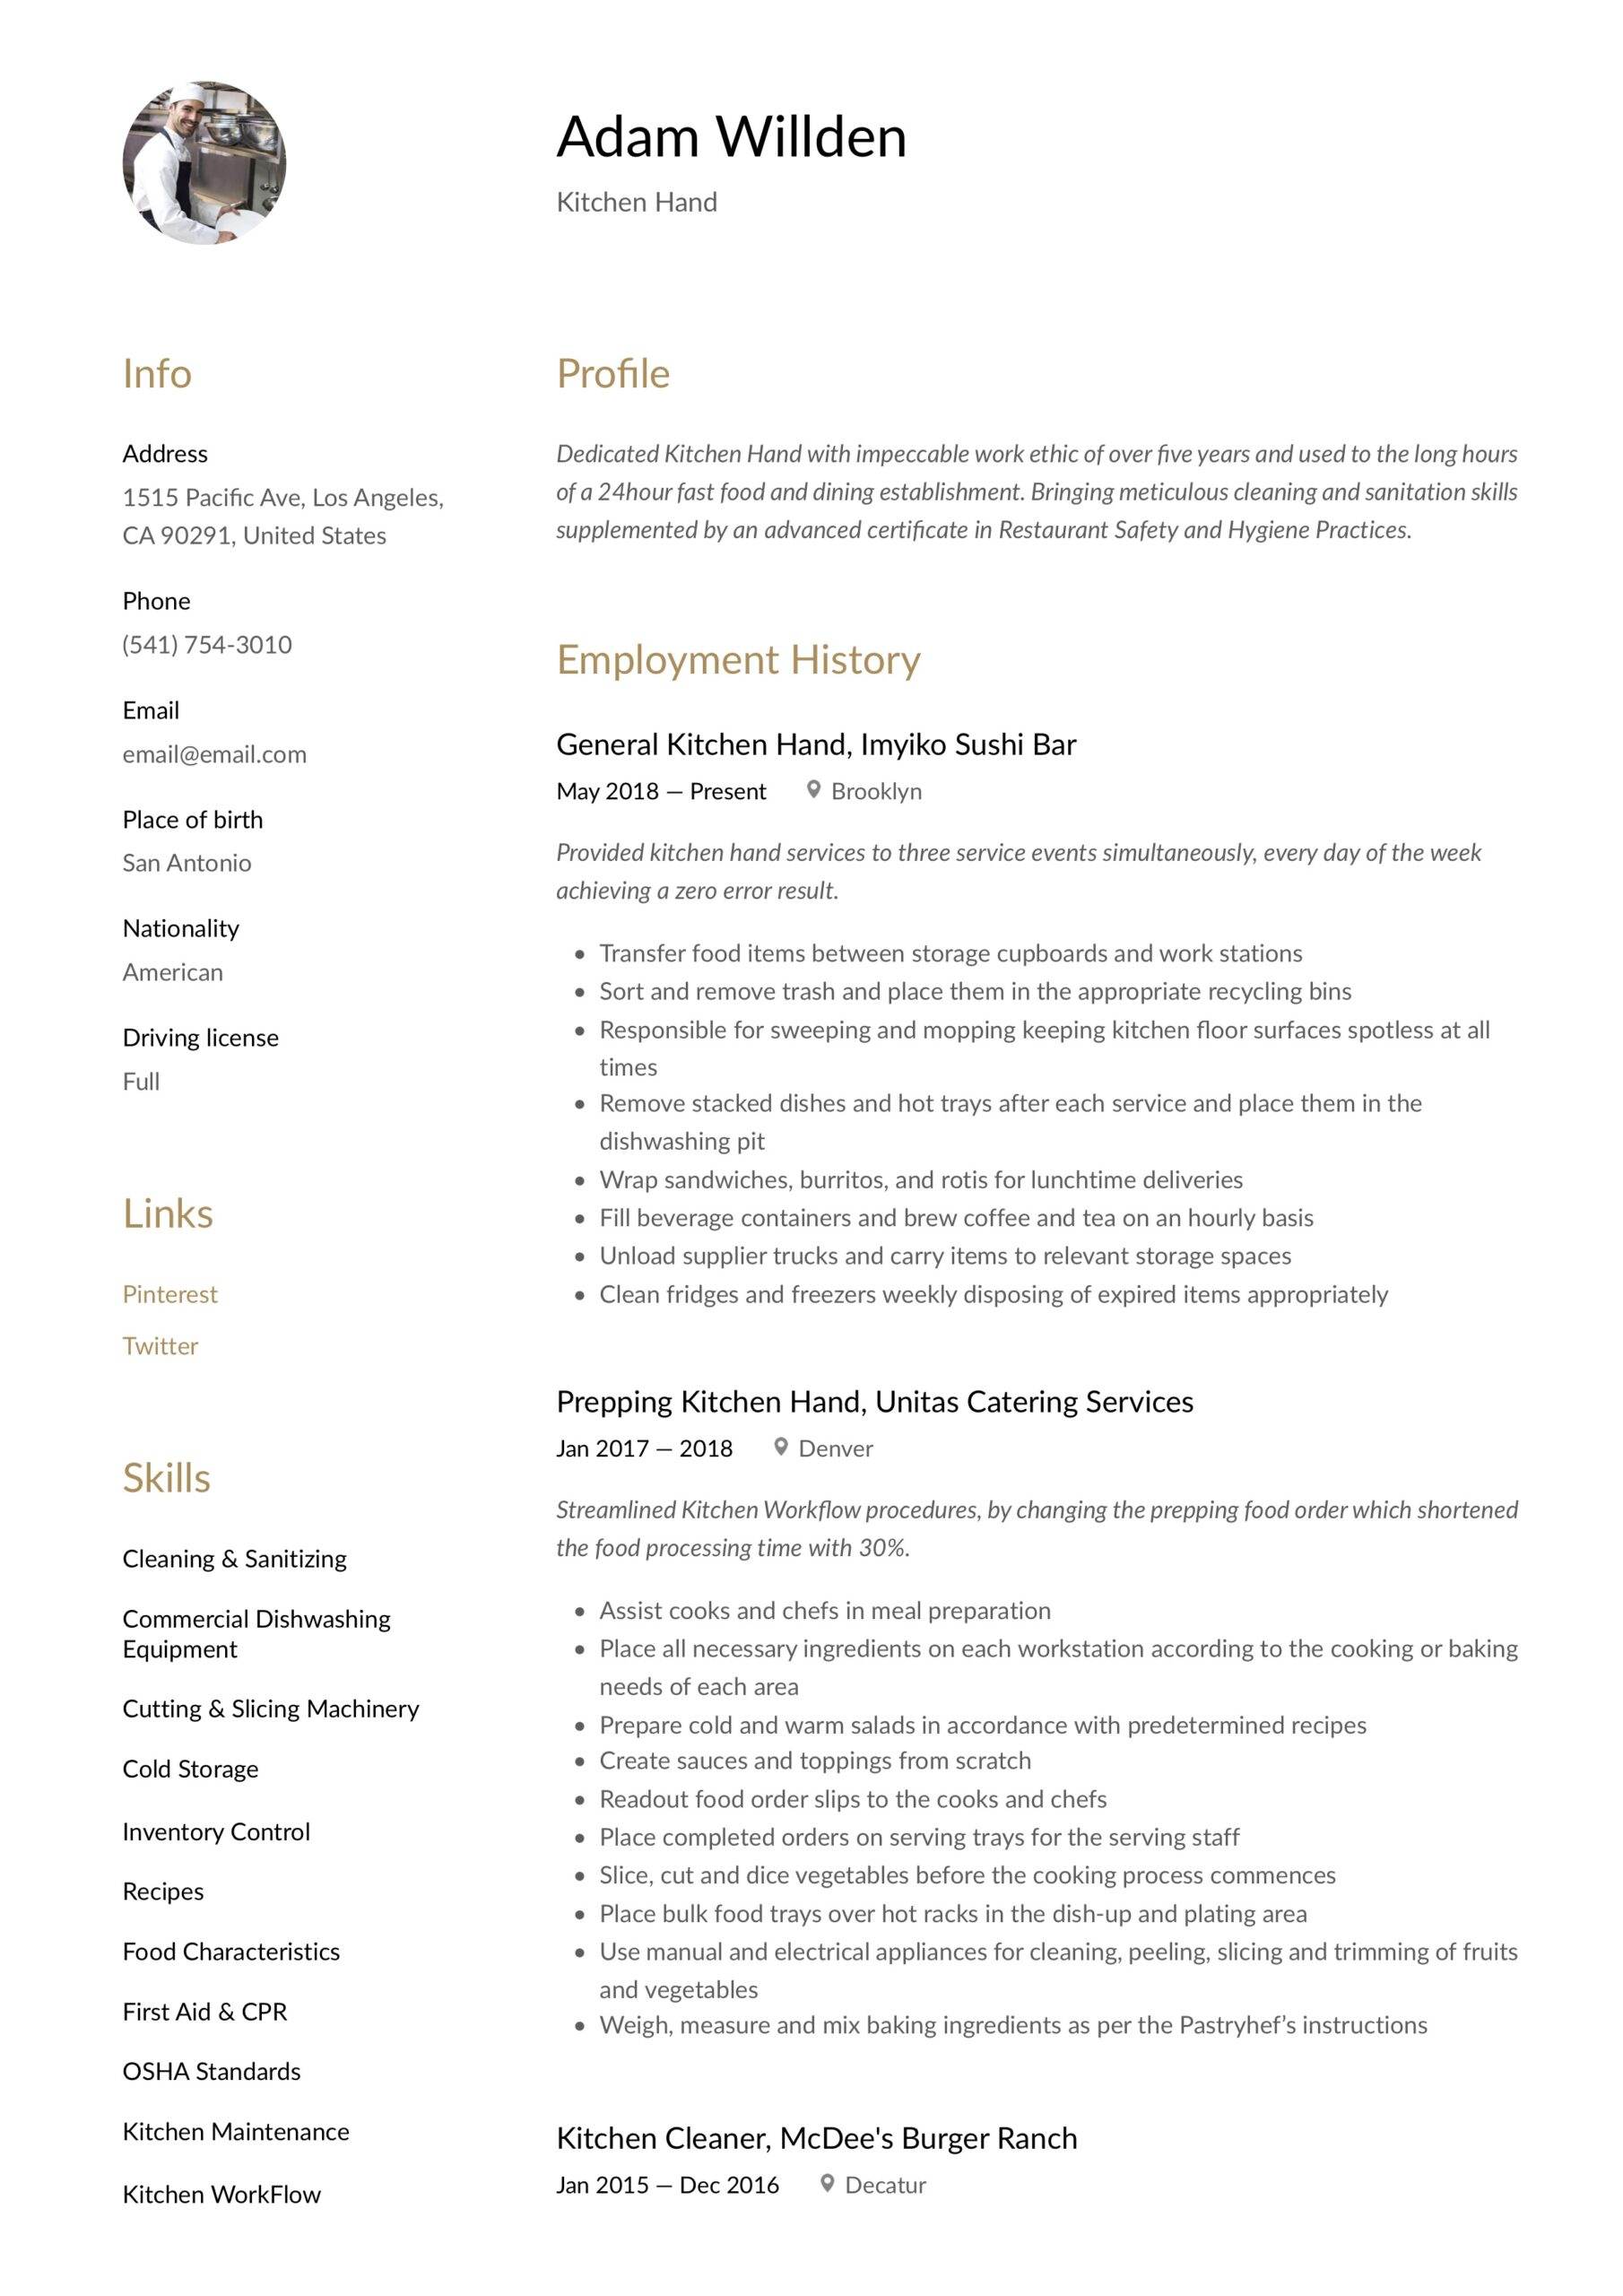 kitchen resume writing guide free templates staff job description for public works rn Resume Kitchen Staff Job Description For Resume